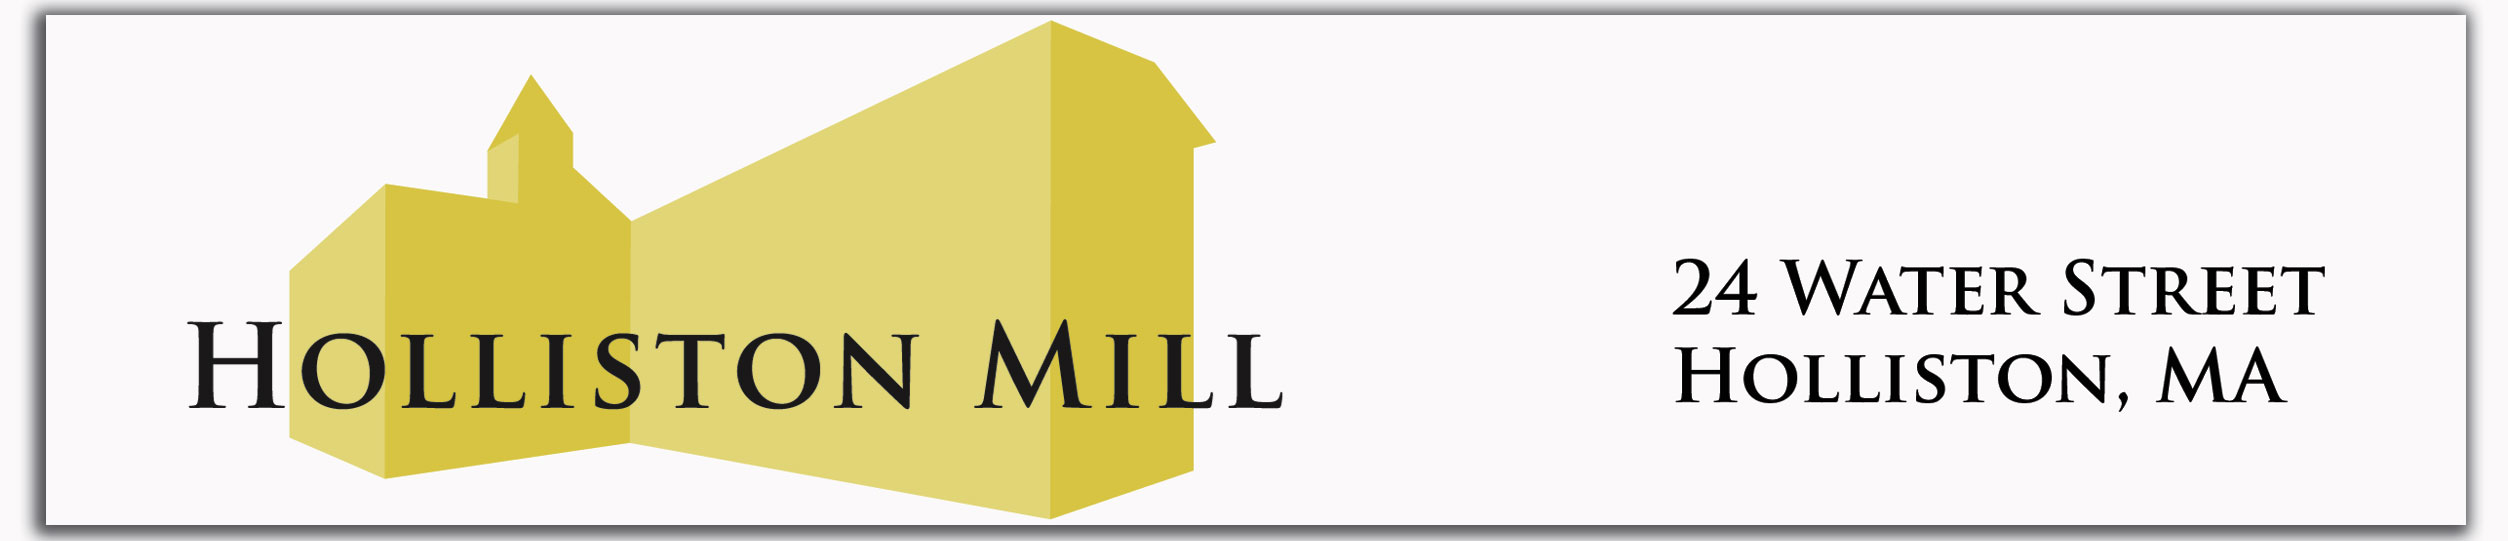 mill-logo-Addrs-Shdw